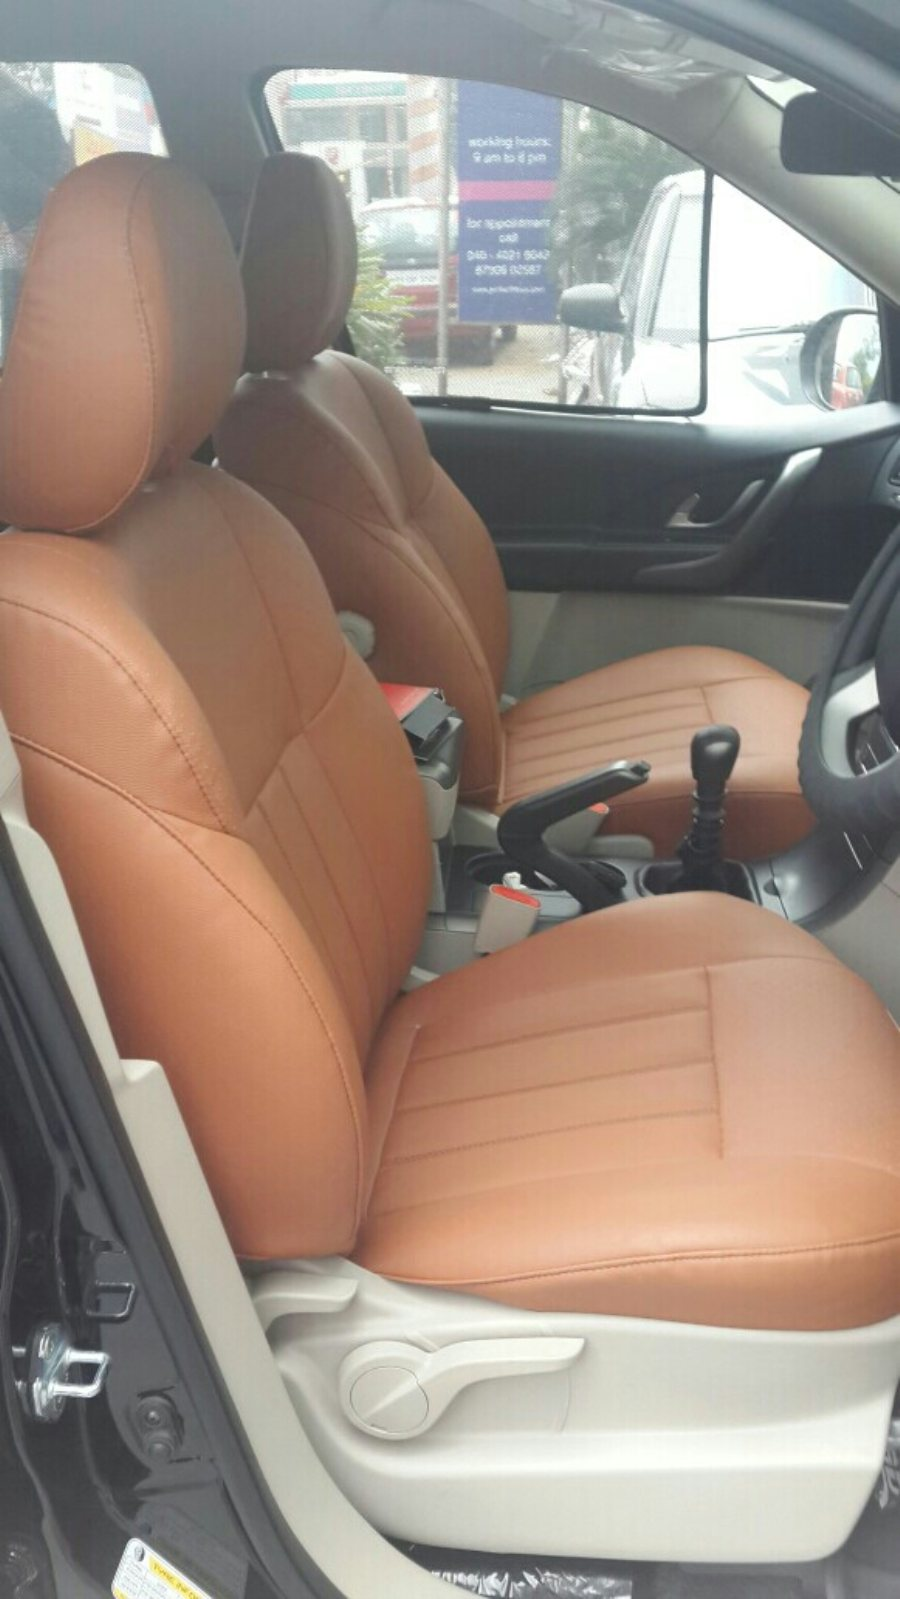 Autoform seatcovers in all interior and other colours now available at motominds.. In picture is Dark tan seatcovers for xuv 500. .